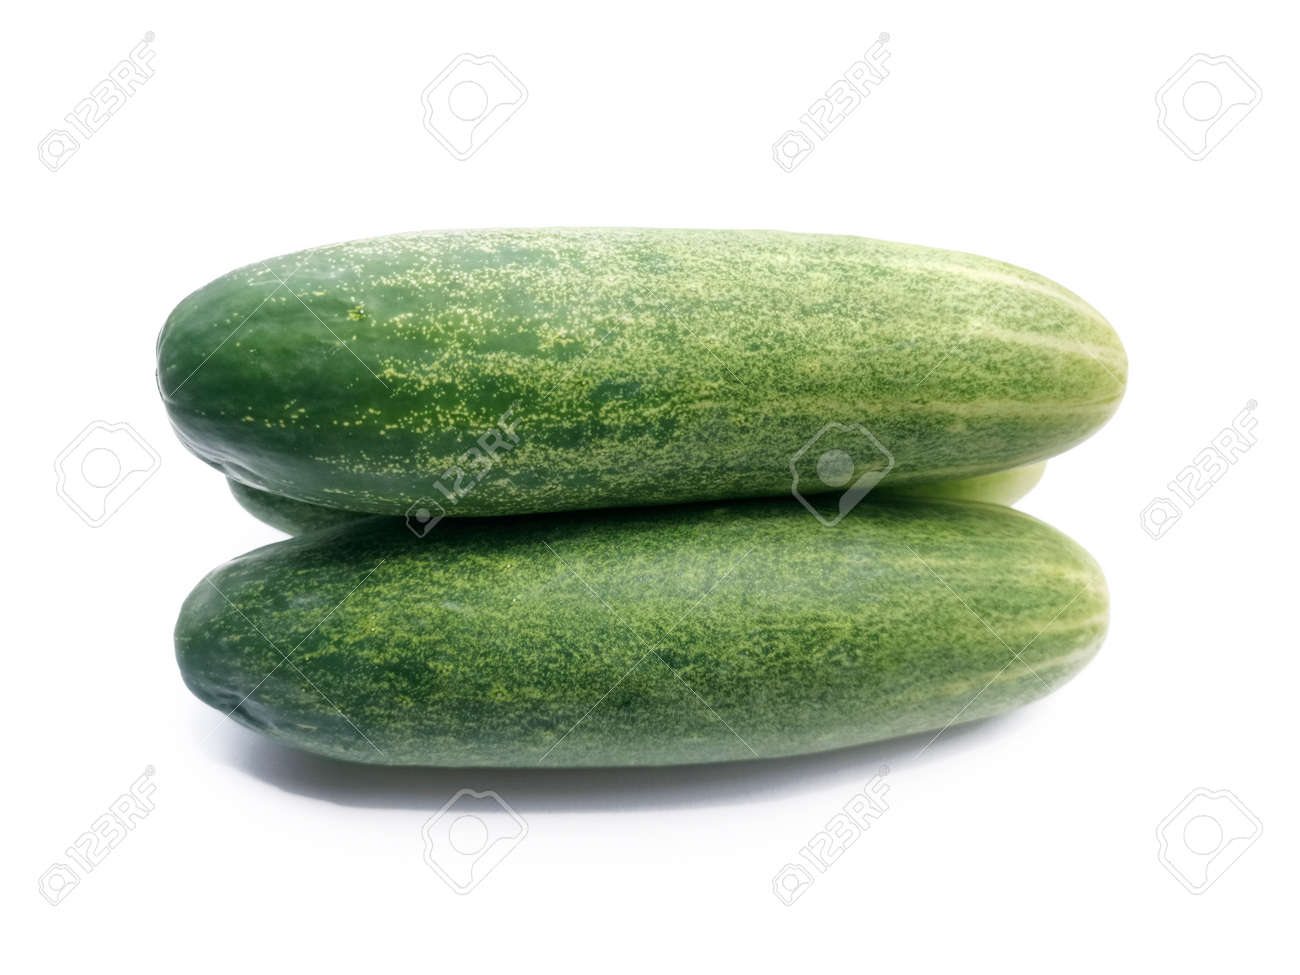 cucumber slice, isolated on a white background - 130368044